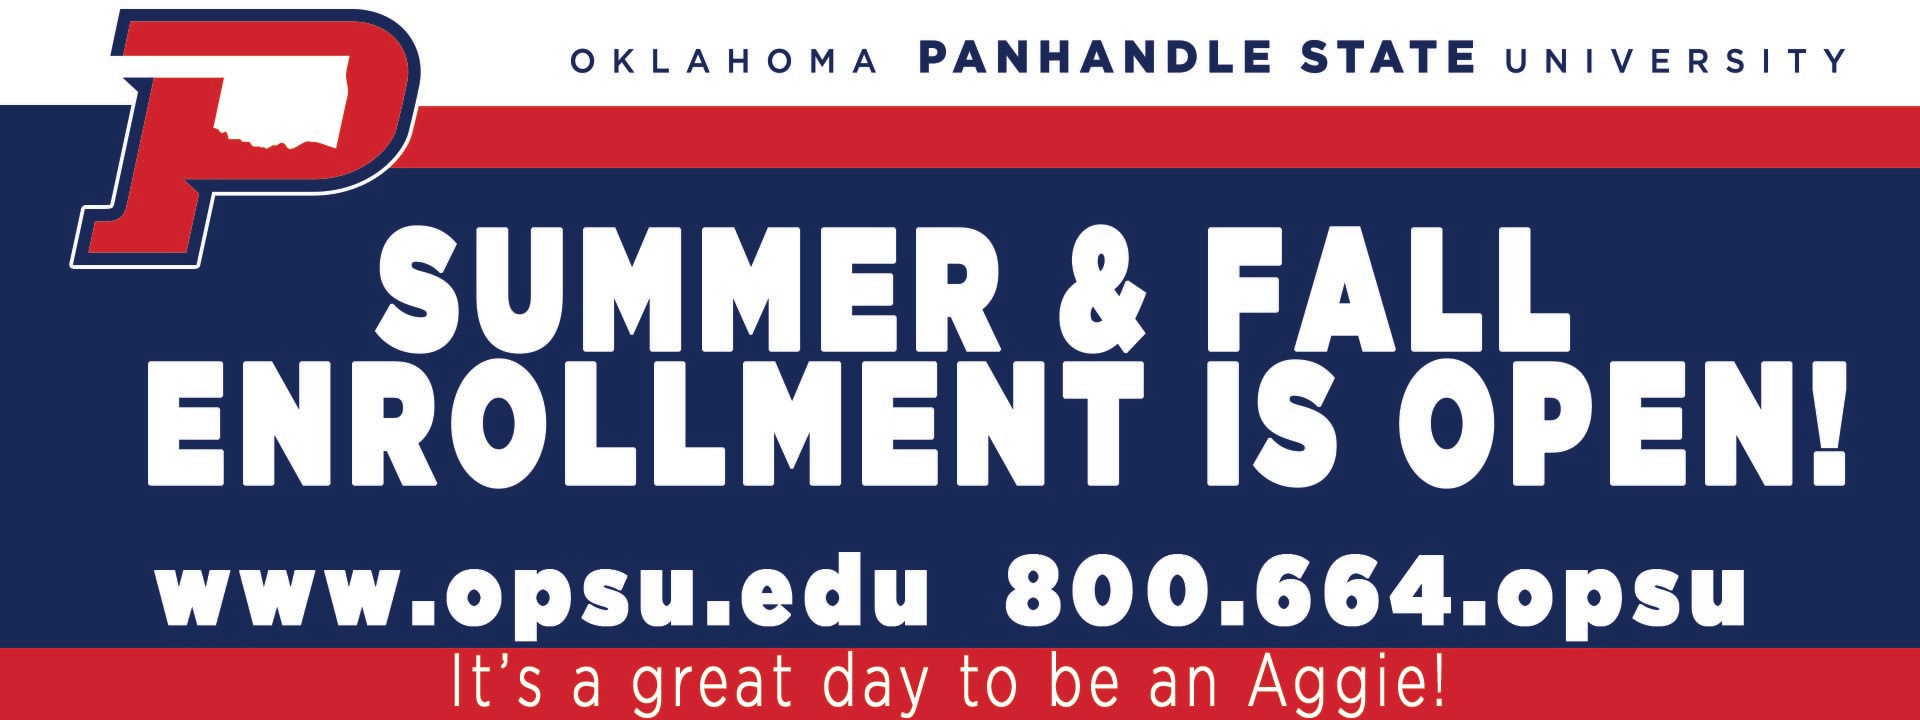 Summer and Fall Enrollment is Open! It's a great day to be an Aggie!